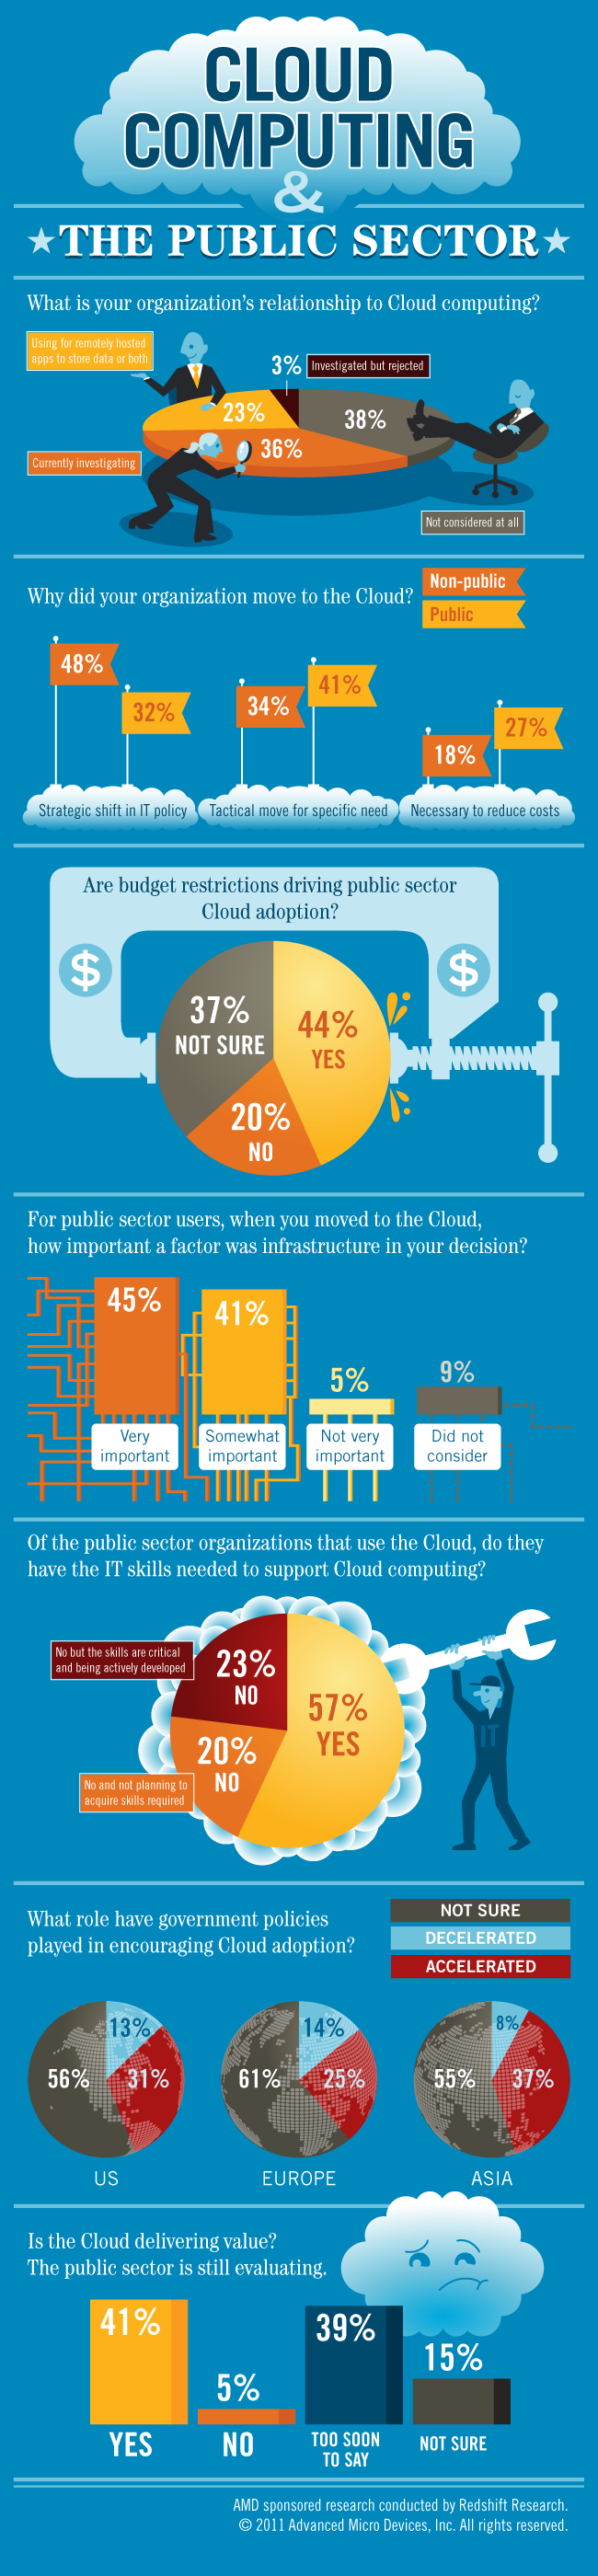 Cloud Computing and Public Sector